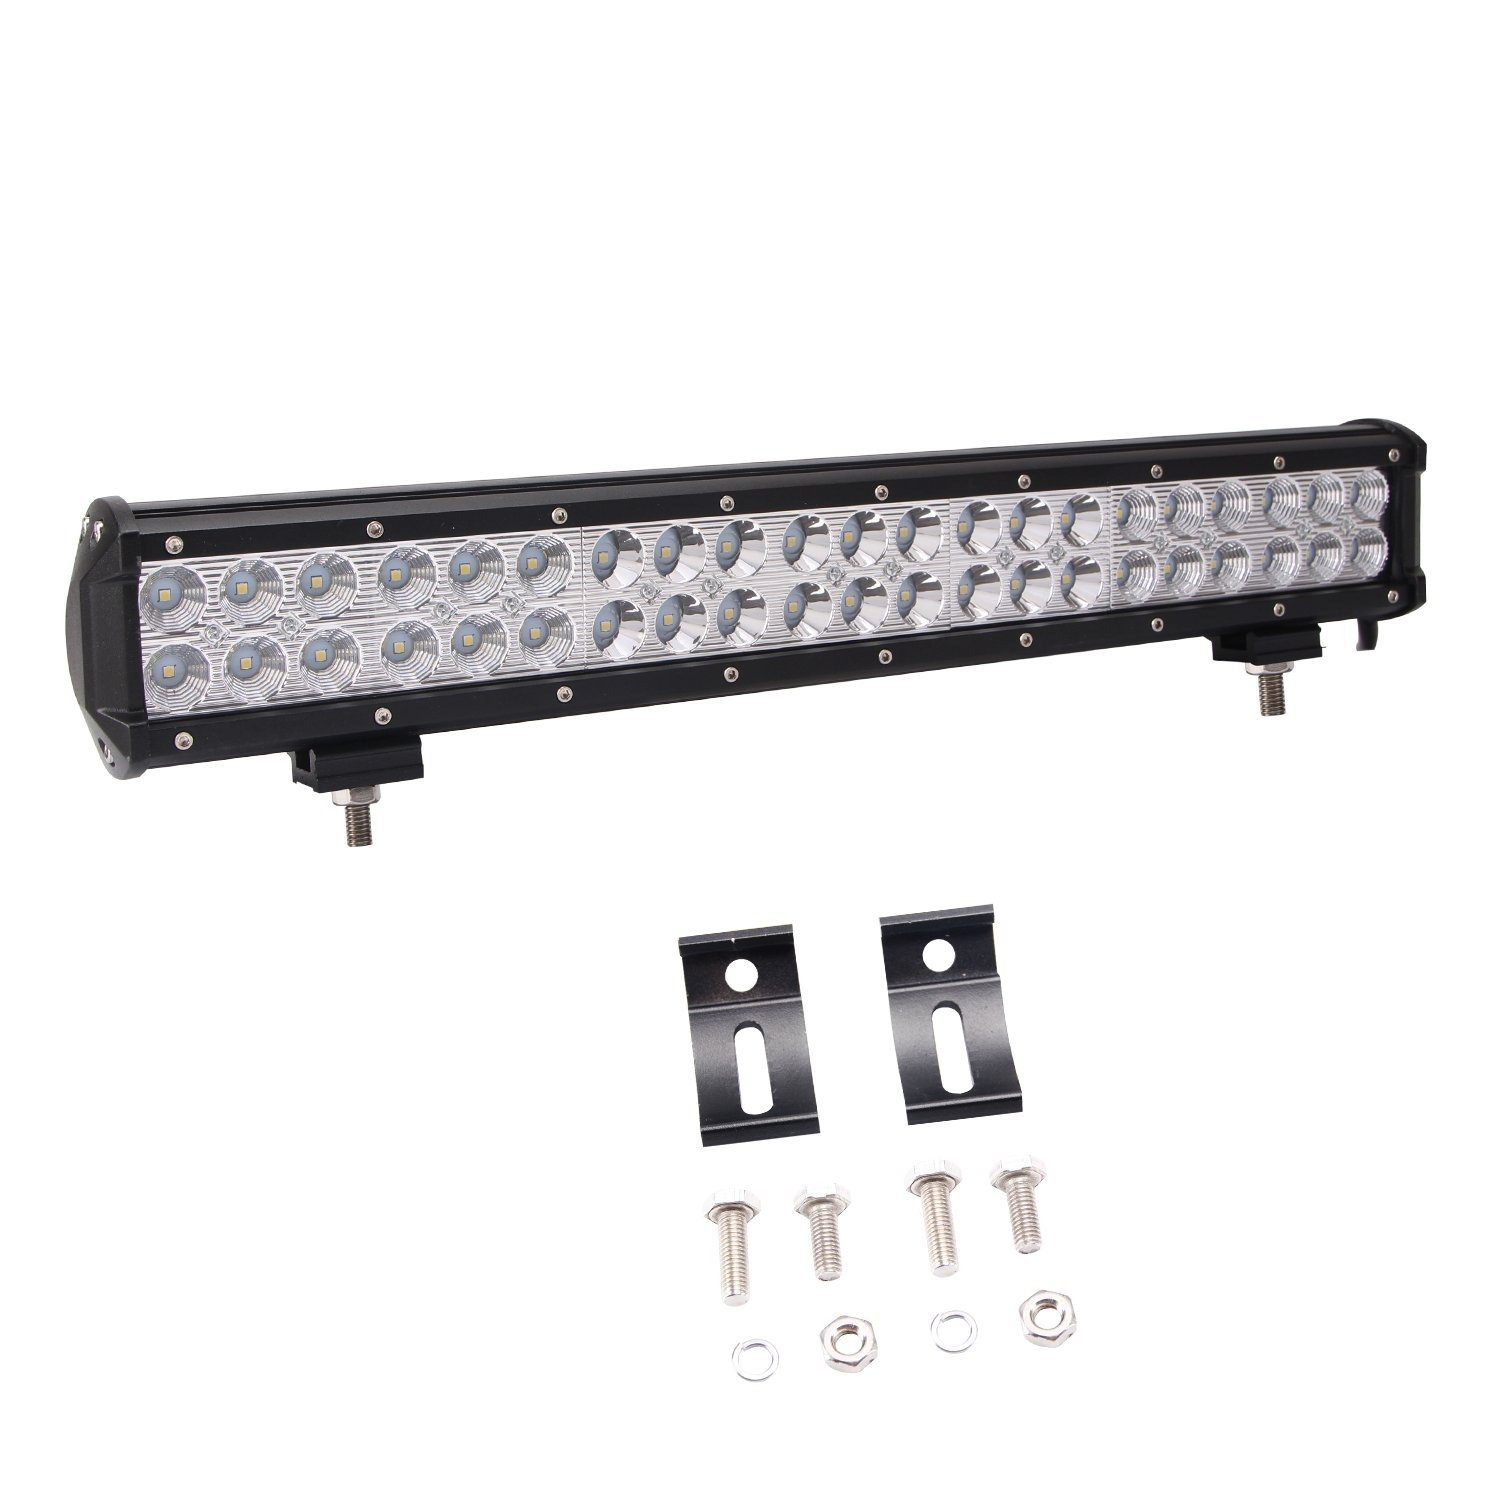 Top Brightest Offroad Light Bar